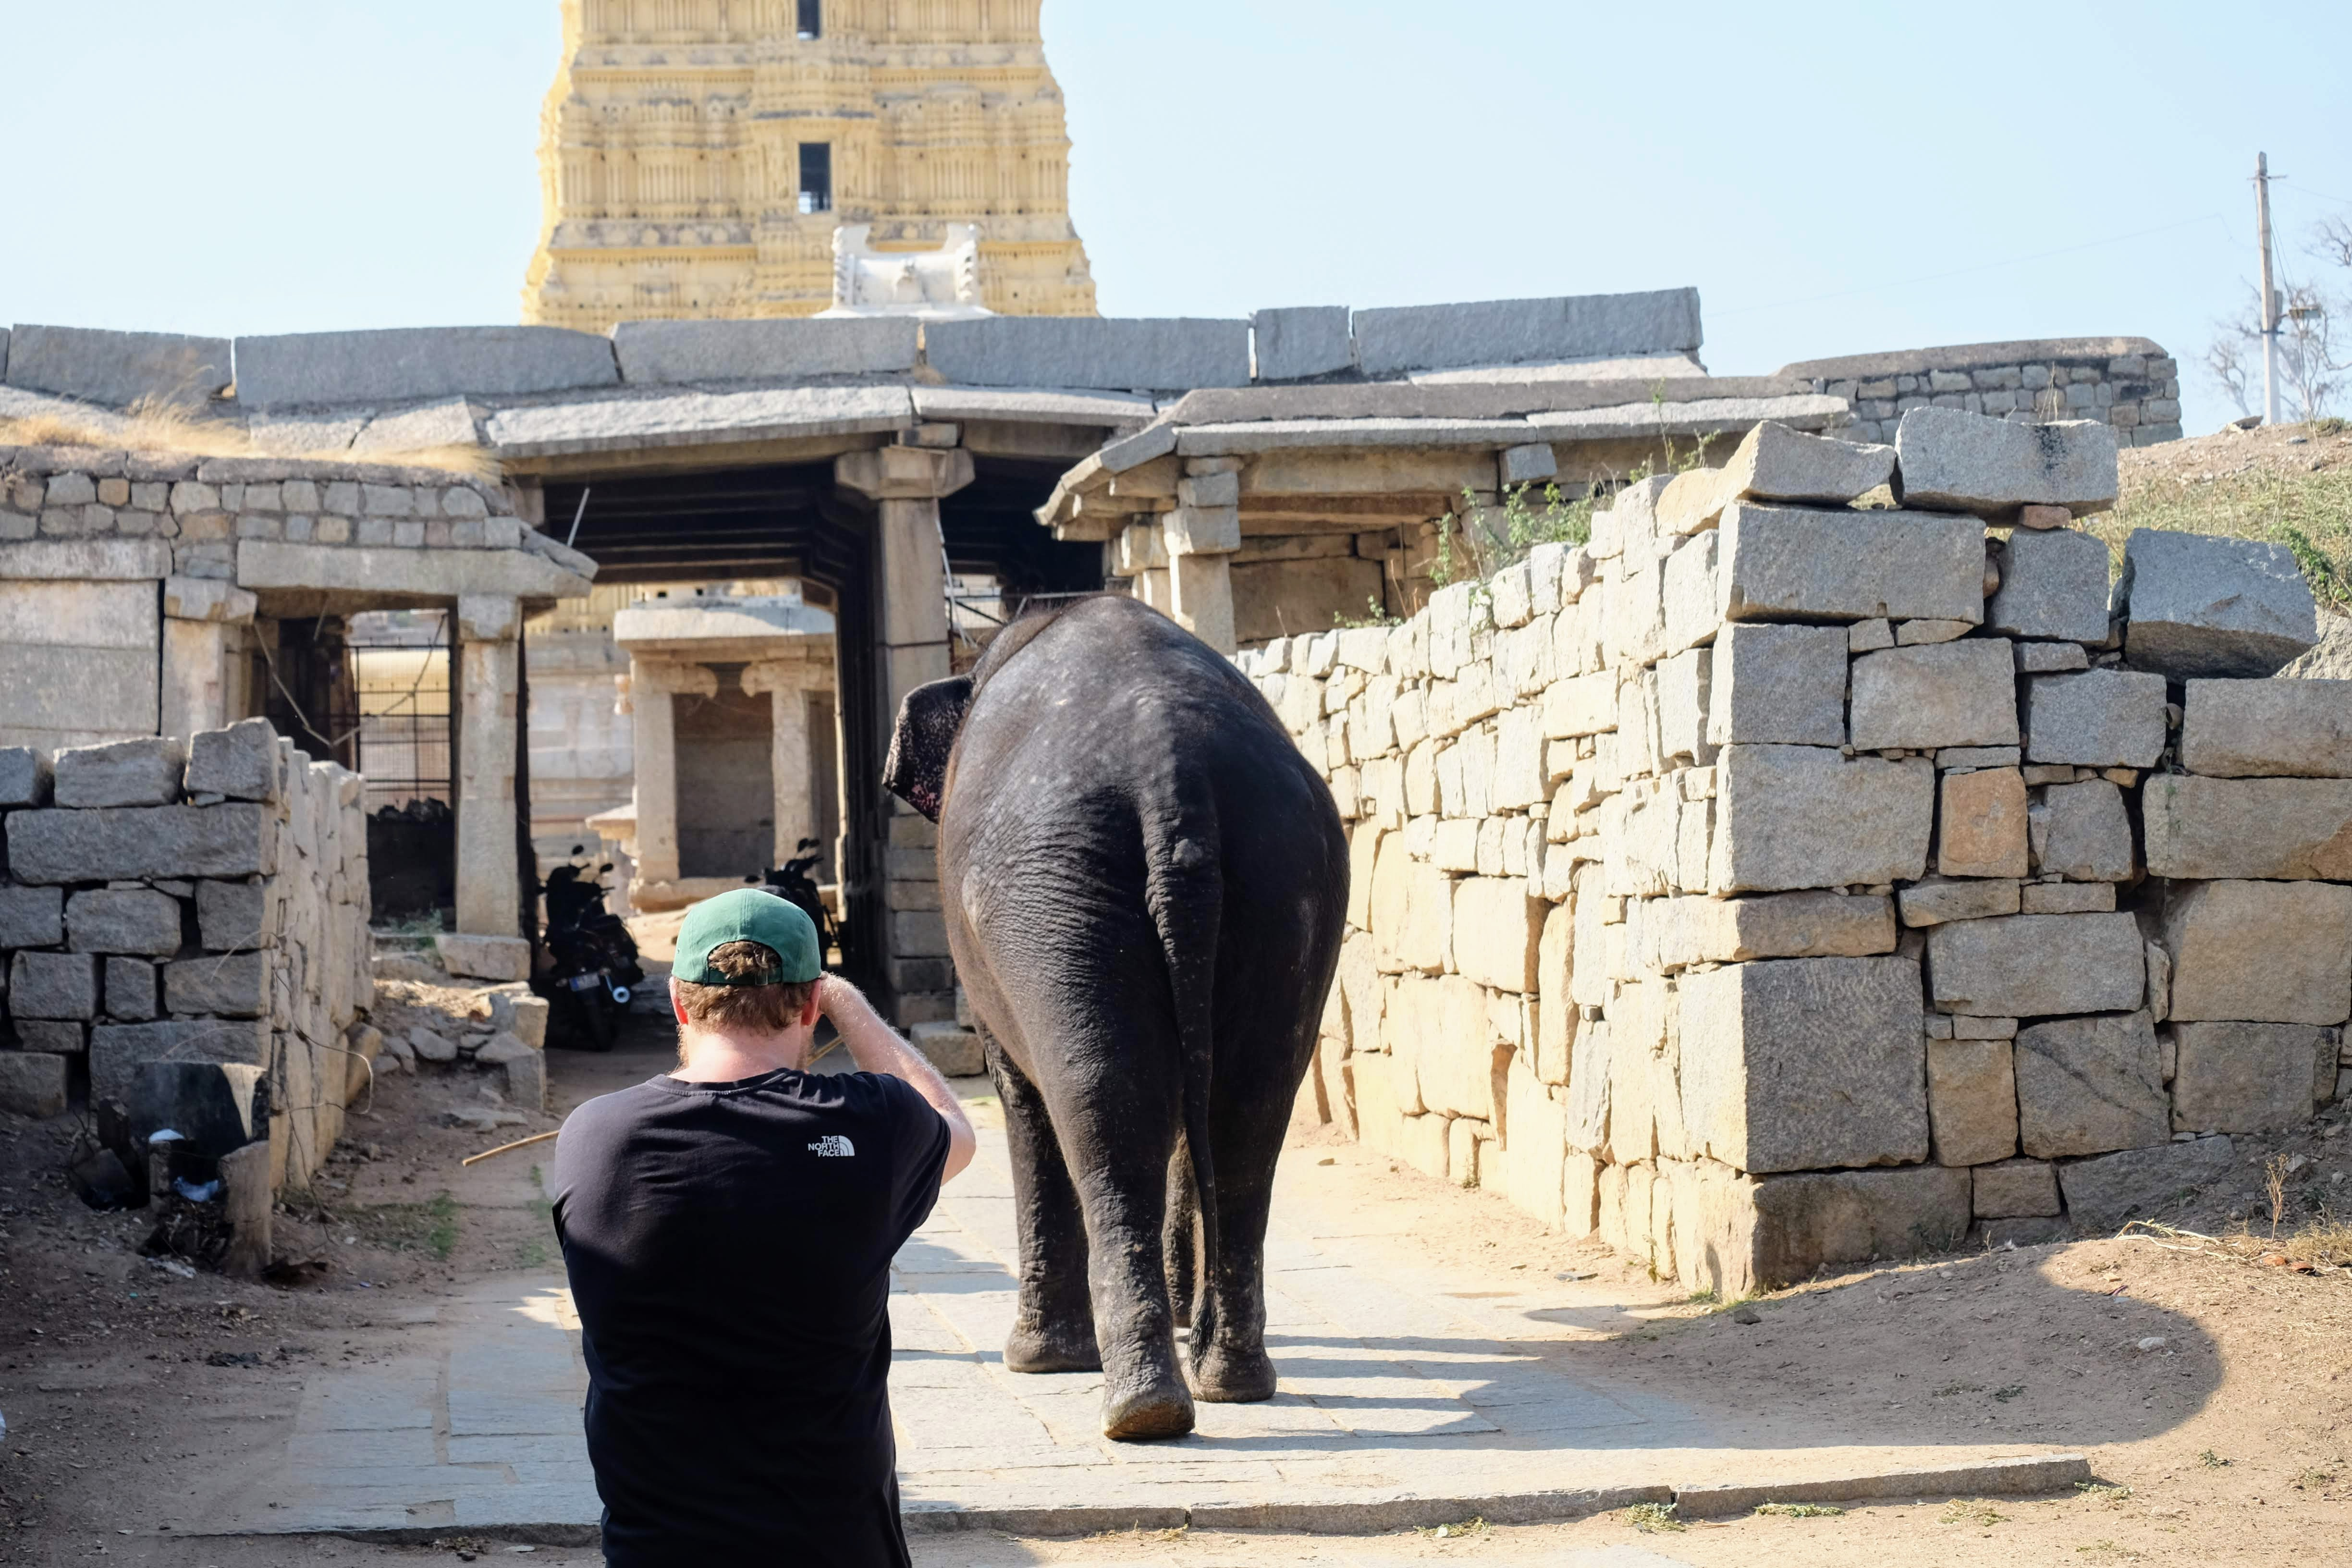 Lakshmi elephant in Virupaksha Temple in Hampi, India